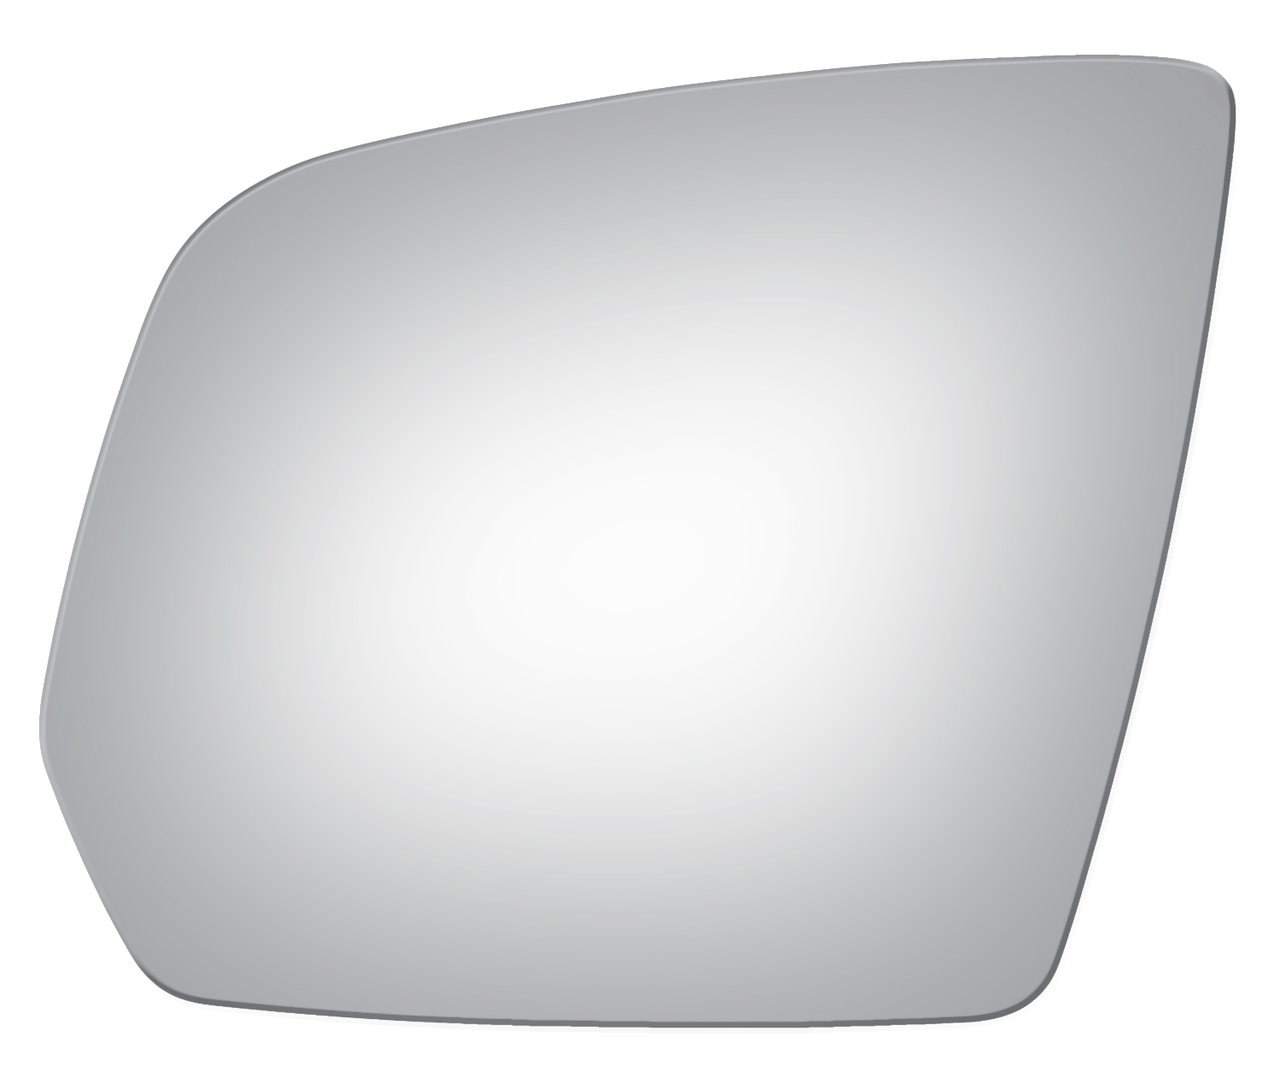 2011 mercedes benz gl550 driver side mirror 4283 for Driver side mirror replacement mercedes benz